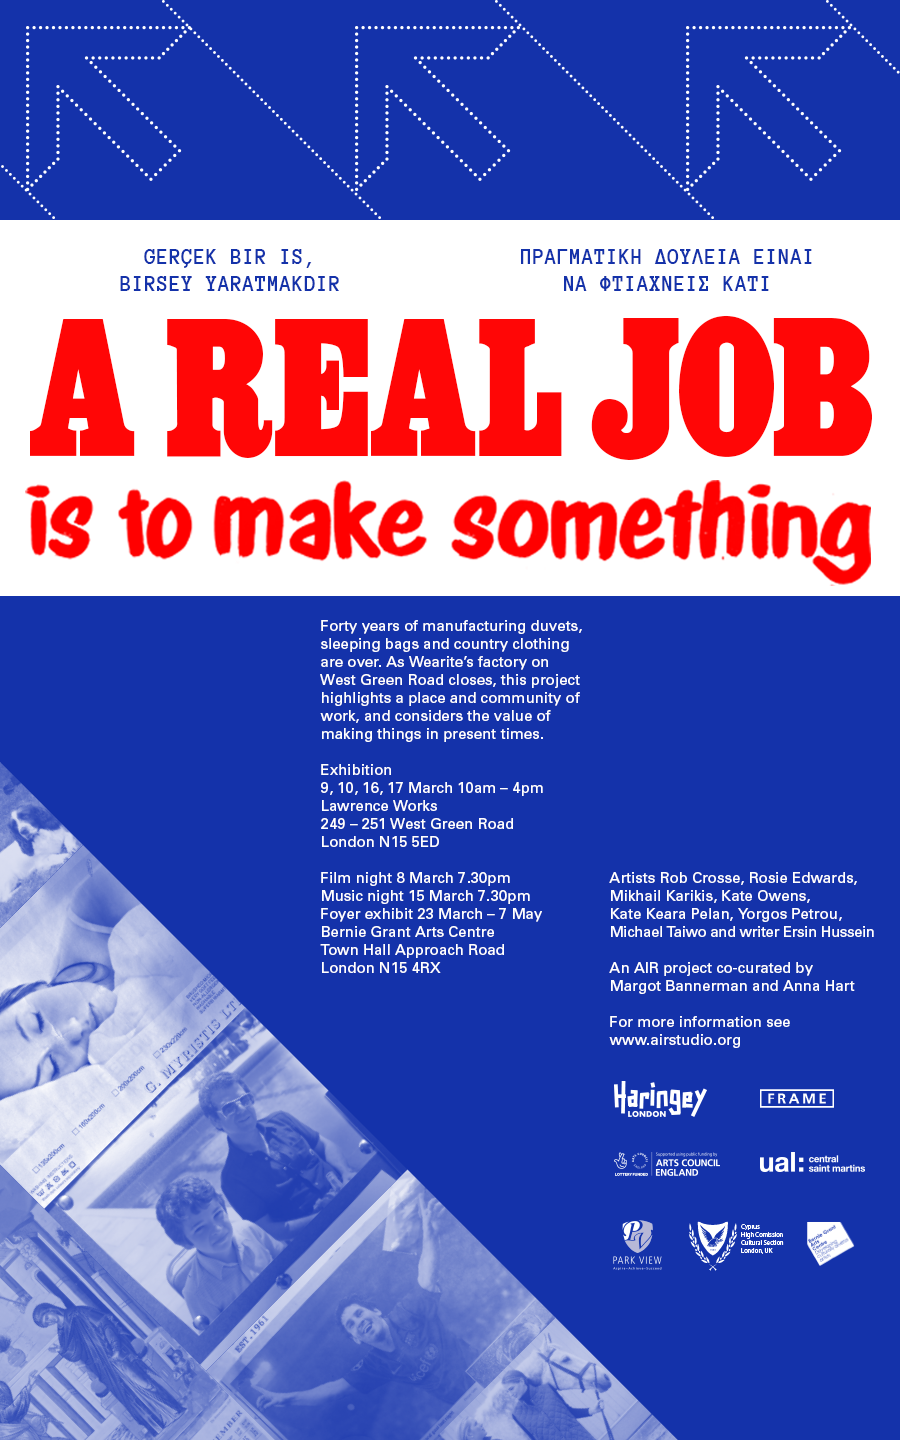 A real job is to make something